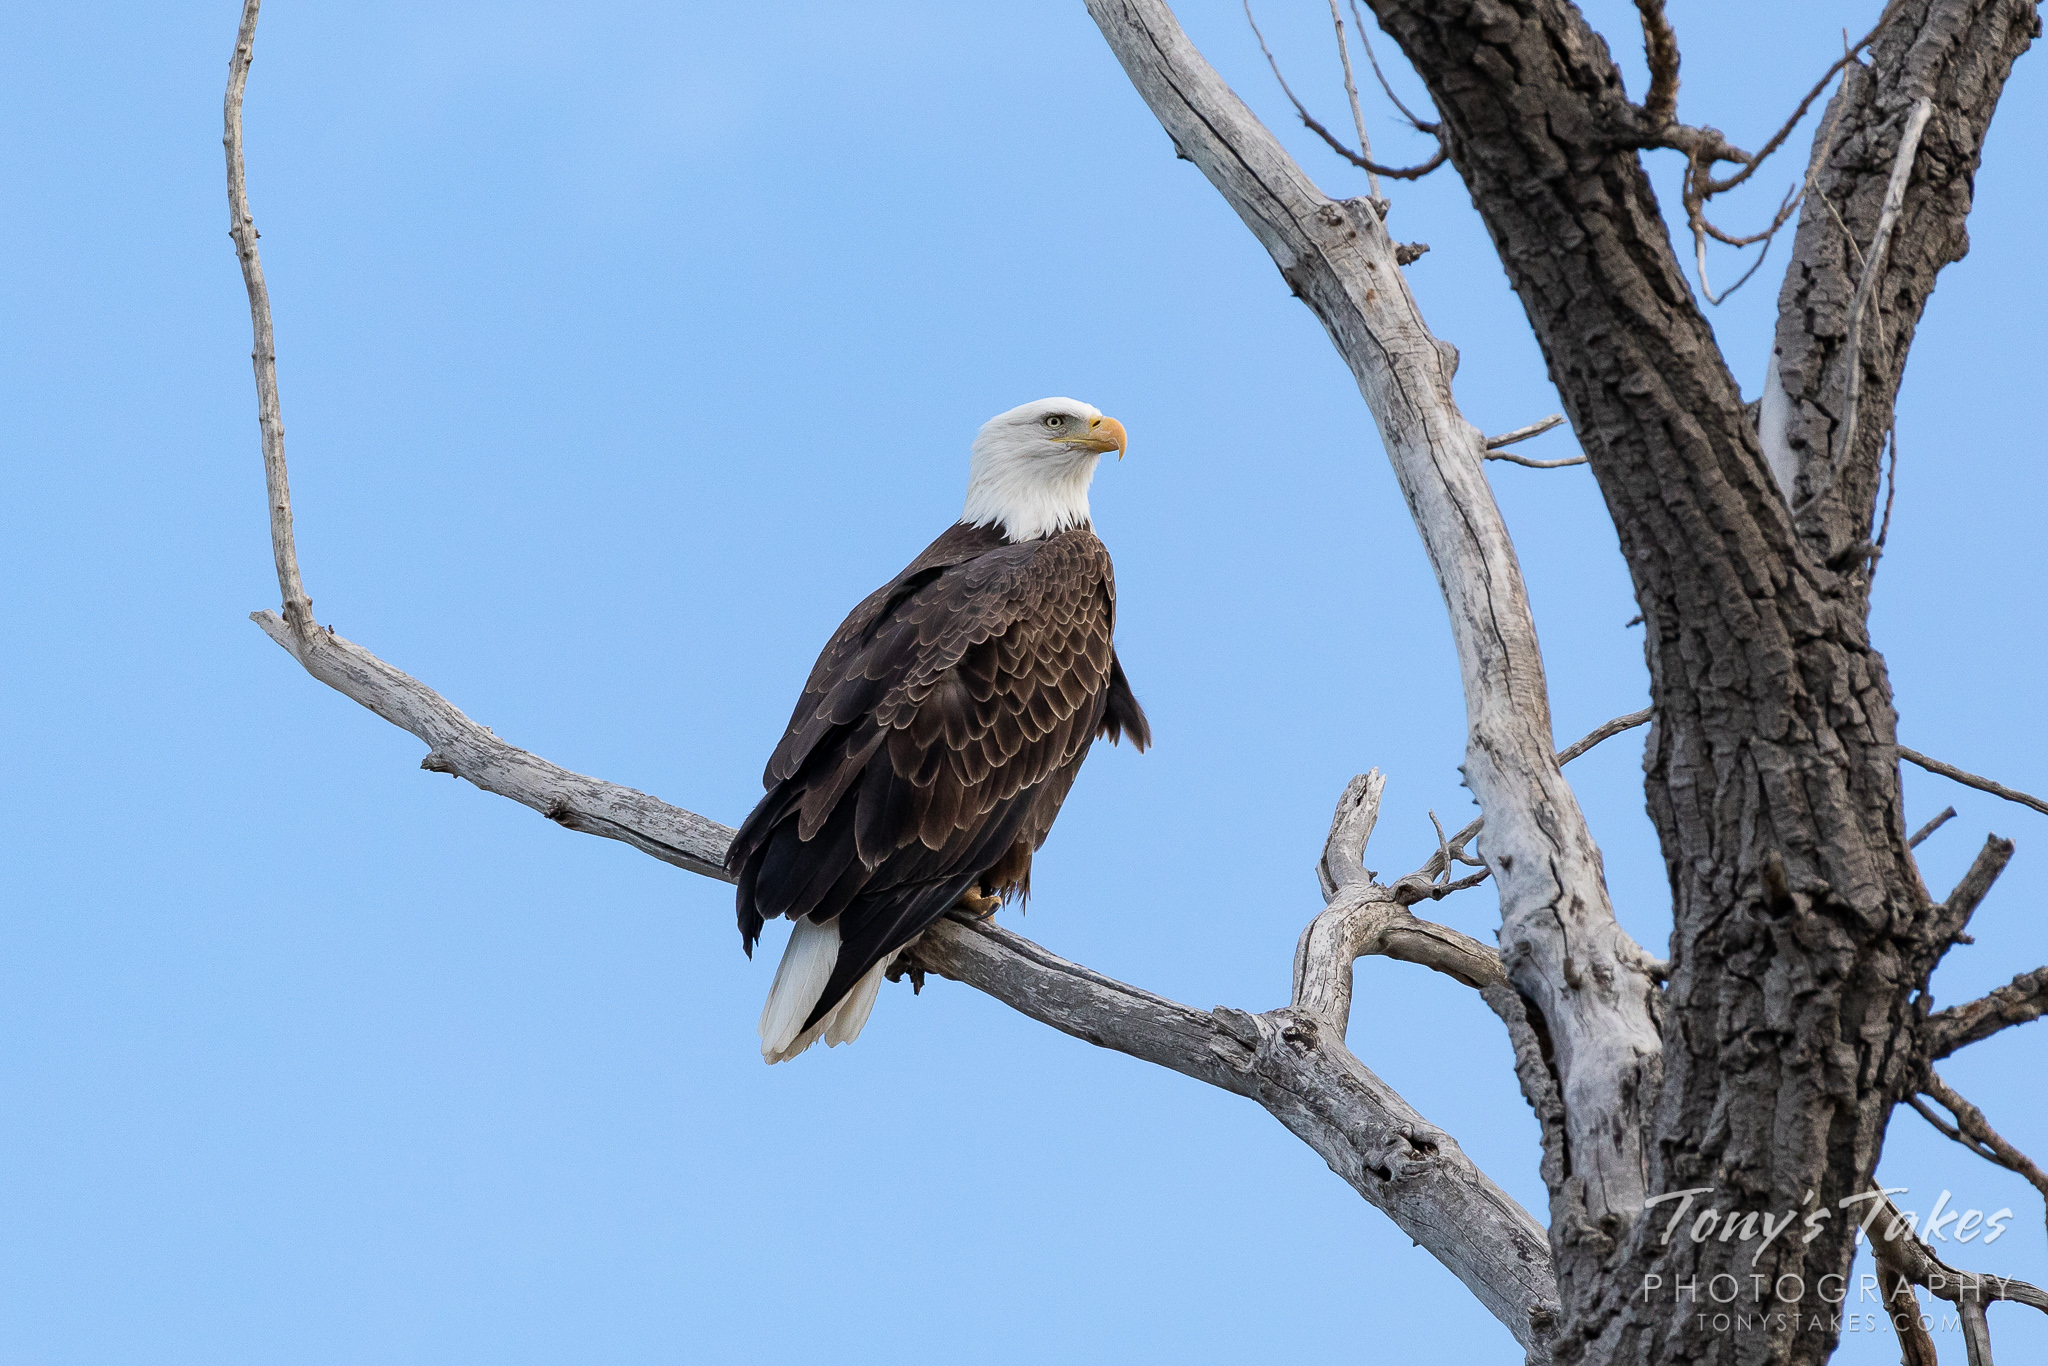 A bald eagle hangs out near the South Platte River in Adams County, Colorado. (© Tony's Takes)